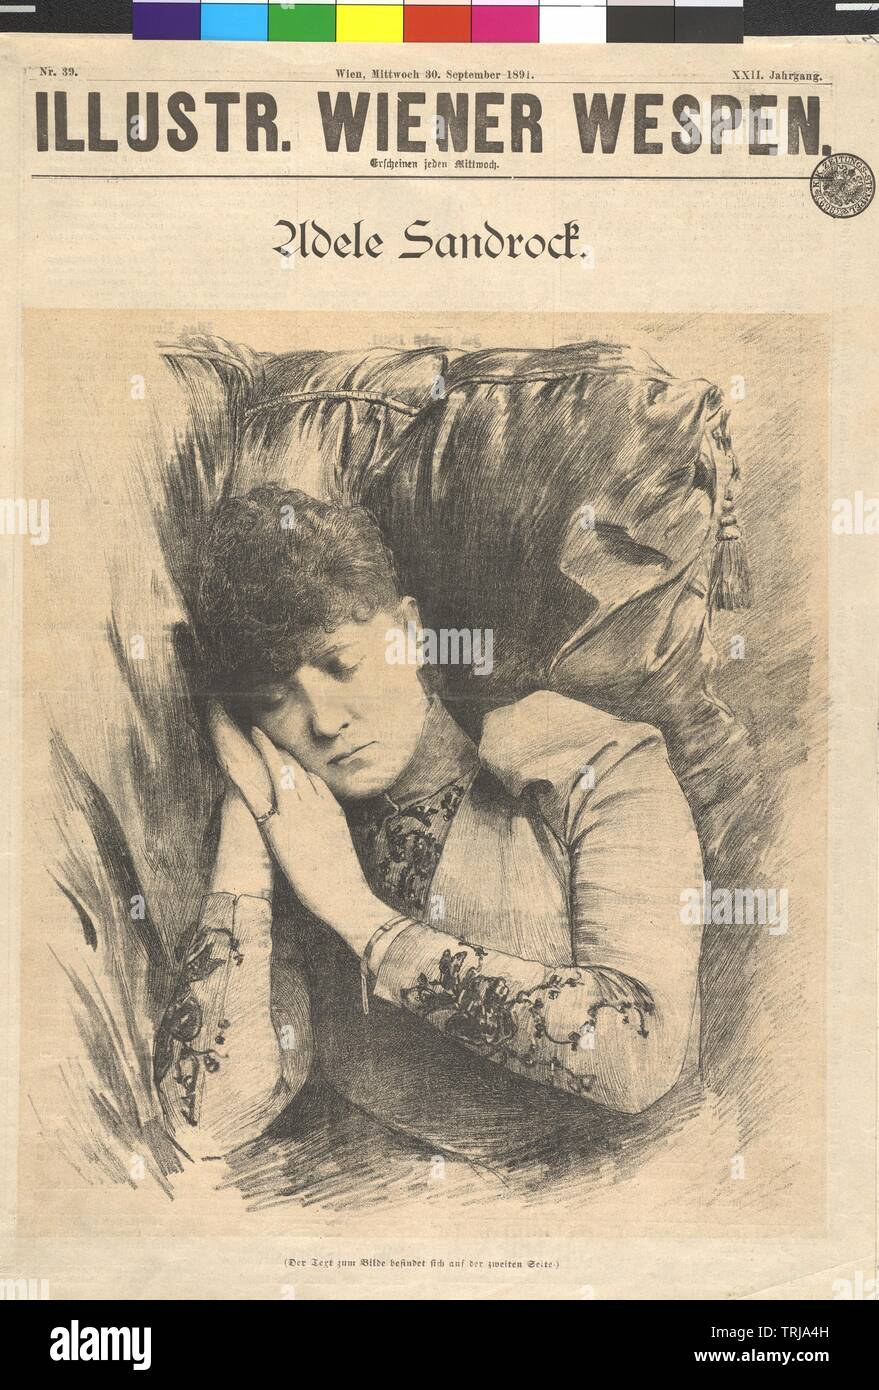 Sandrock, Adele, lithographic print, 'Illustrierte Wiener Wespen', 30.9.1891, Additional-Rights-Clearance-Info-Not-Available - Stock Image